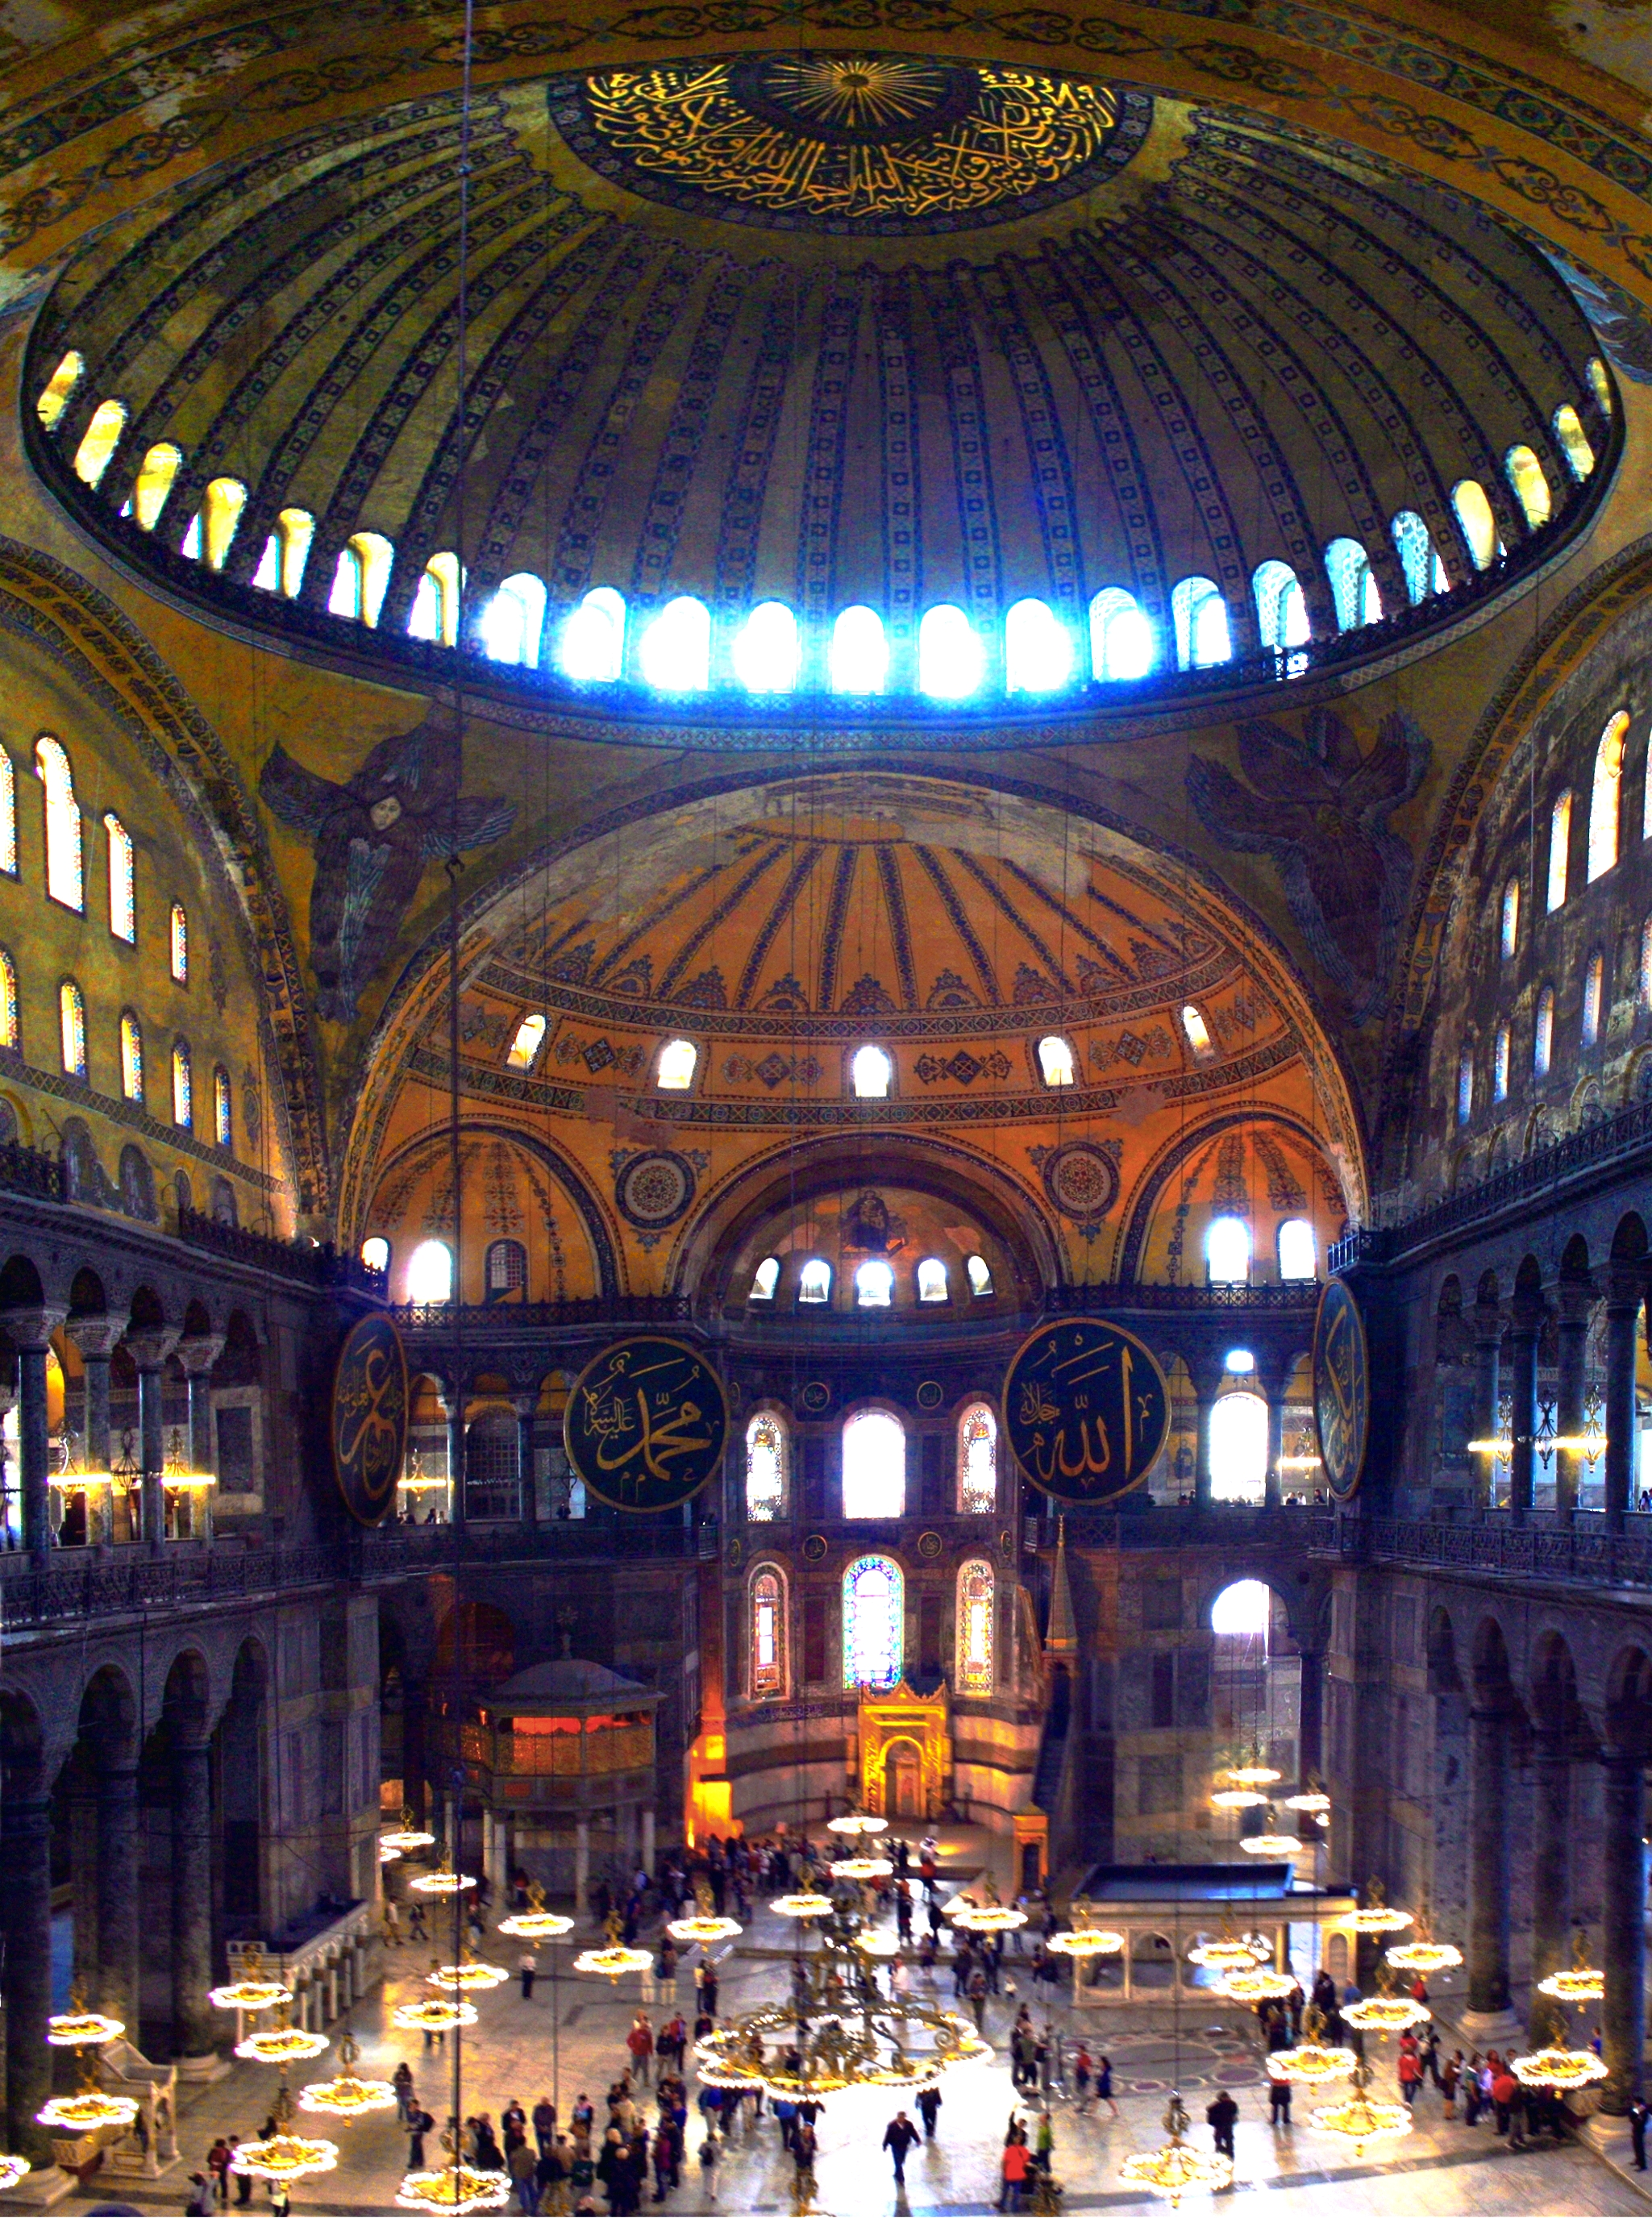 File:Aya Sofya Interior.jpg - Wikimedia Commons